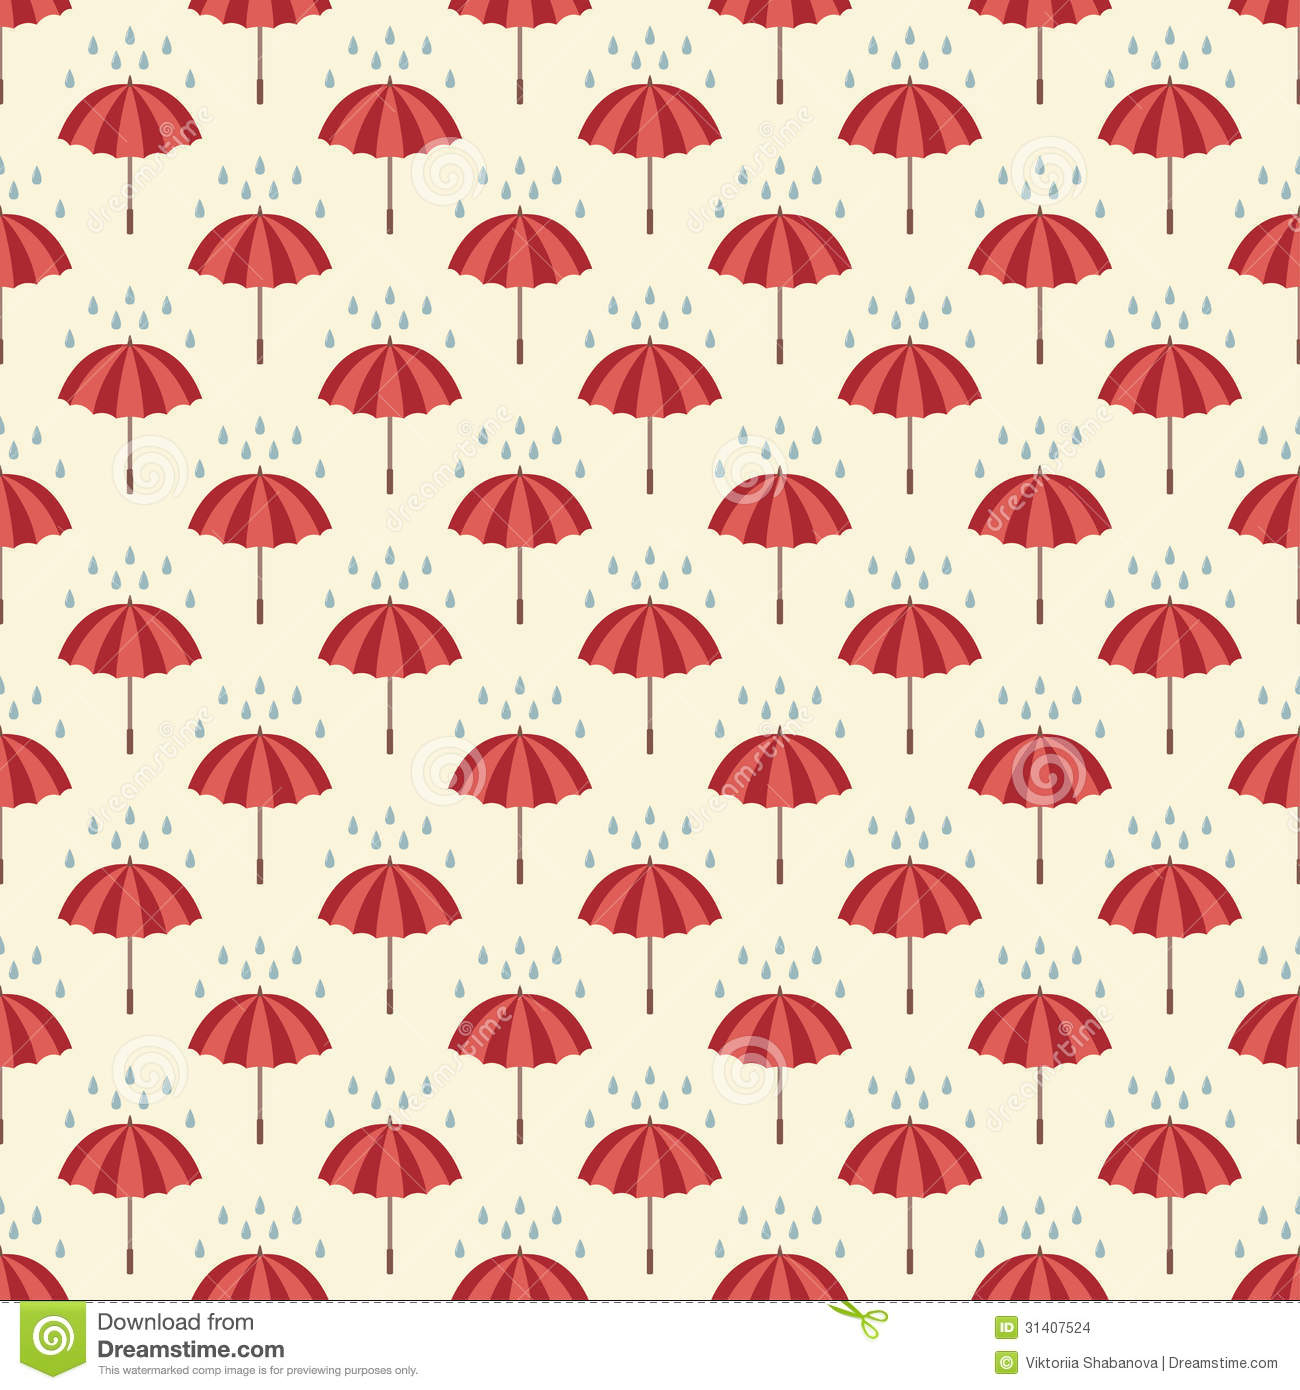 Seamless Pattern With Umbrellas And Rain Drops Can Be Used To Fabric Design Wallpaper Decorative Paper Web Etc Swatches Of Patterns